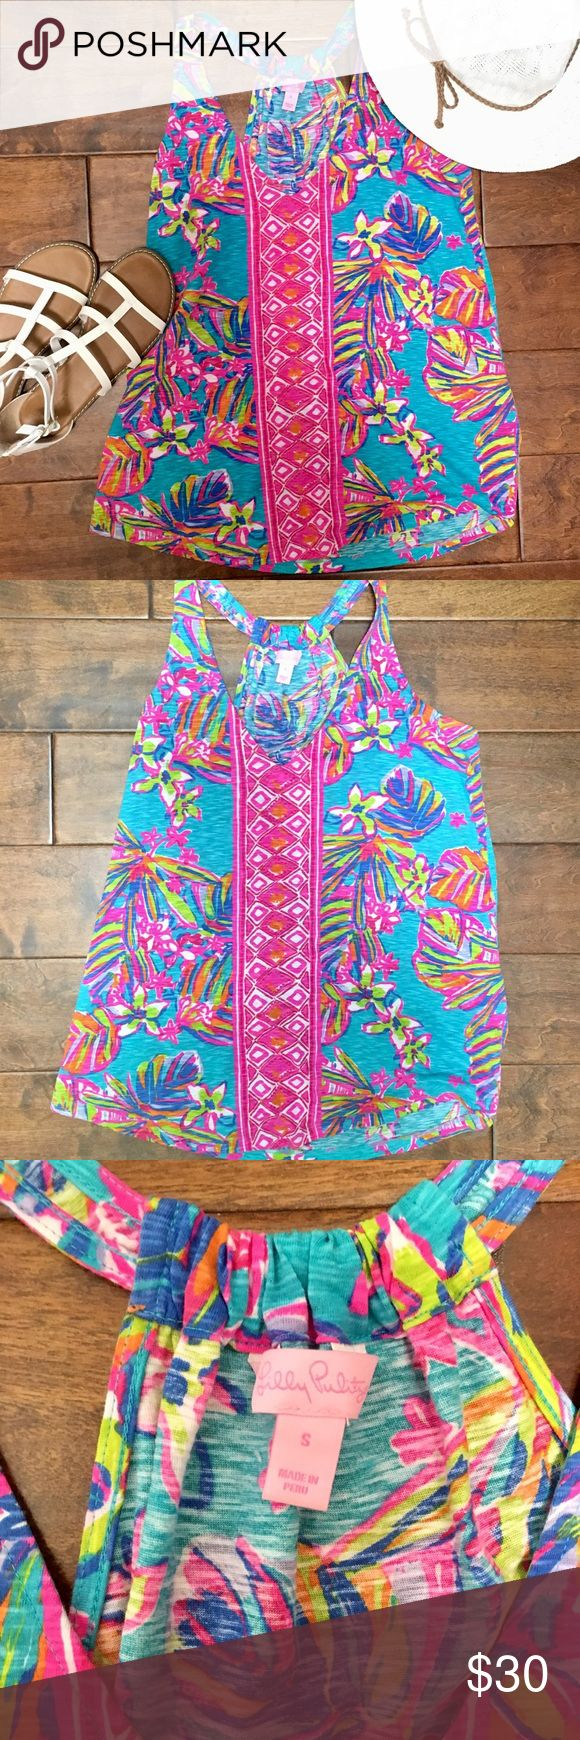 NWOT. Lilly Pulitzer Cotton Tank Top NWOT. Never worn. Super cute tank top! 100% cotton. Size small. Lilly Pulitzer Tops Tank Tops